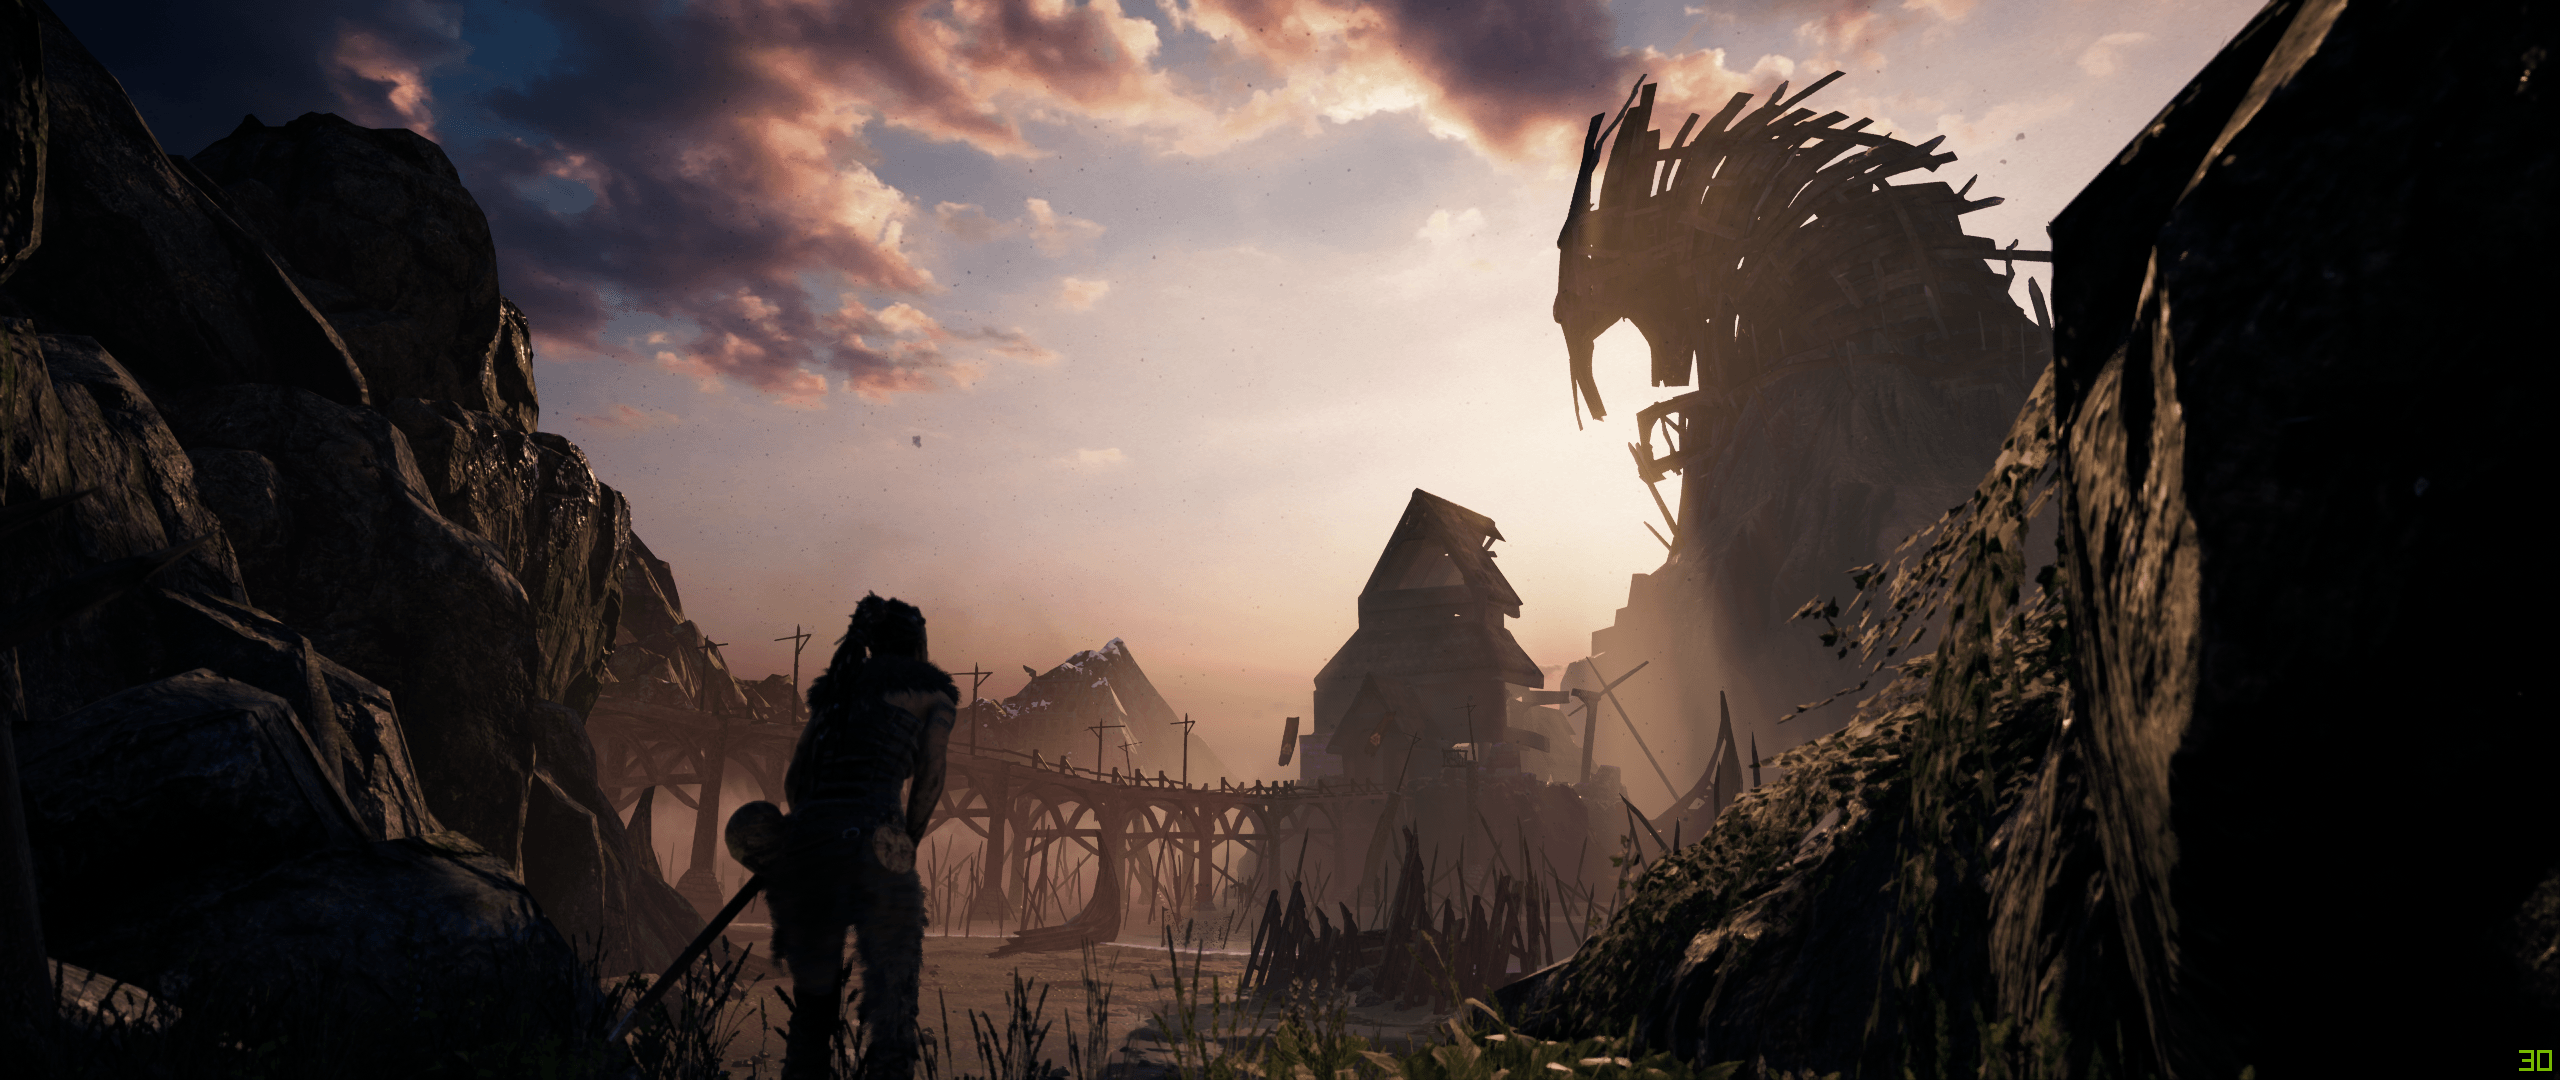 Hellblade: Senua's Sacrifice Wallpapers Wide > Minionswallpapers